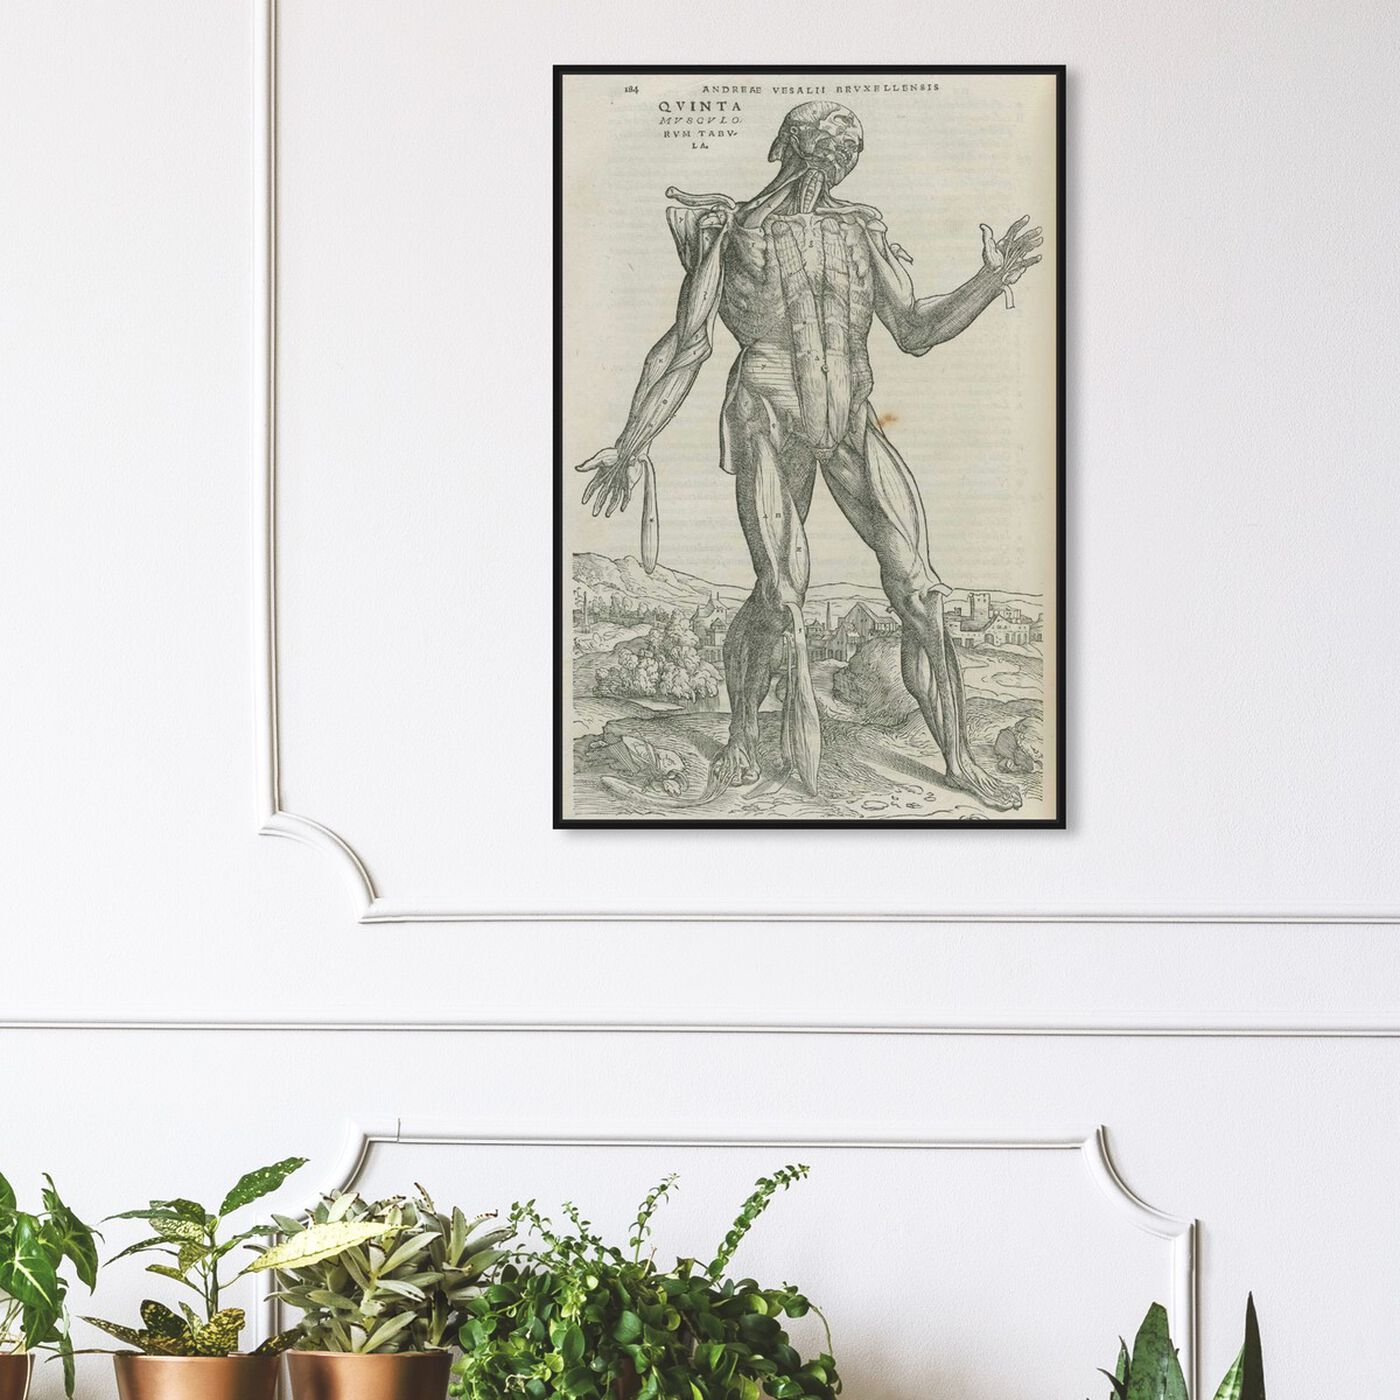 Hanging view of Vesalius II - The Art Cabinet featuring classic and figurative and nudes art.